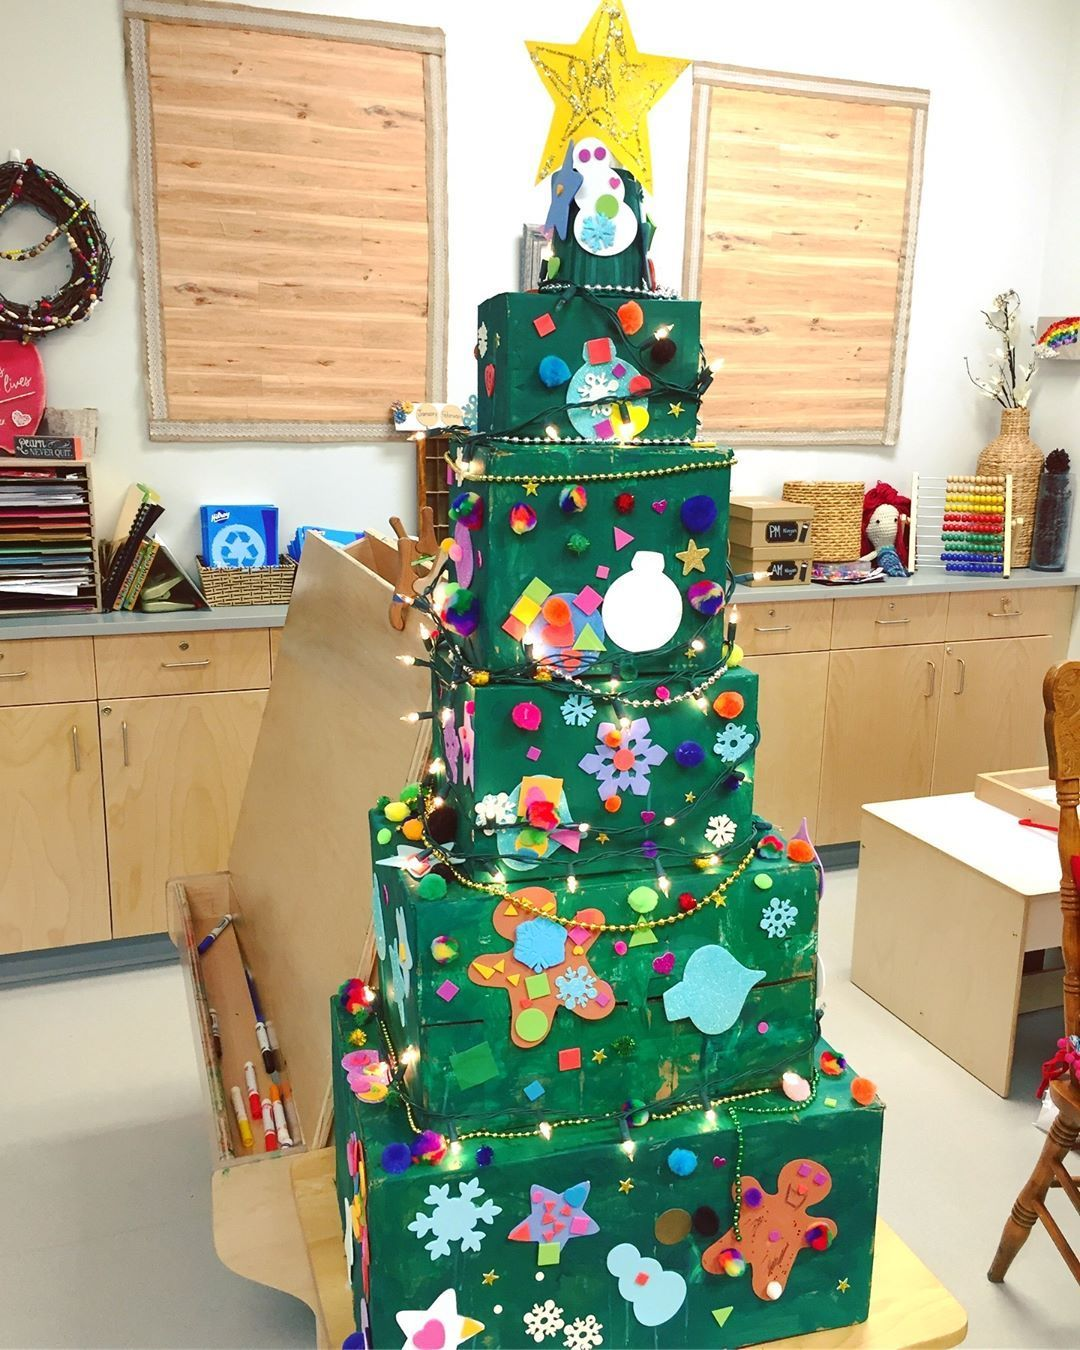 A Collaborative Christmas Tree Created By The Children